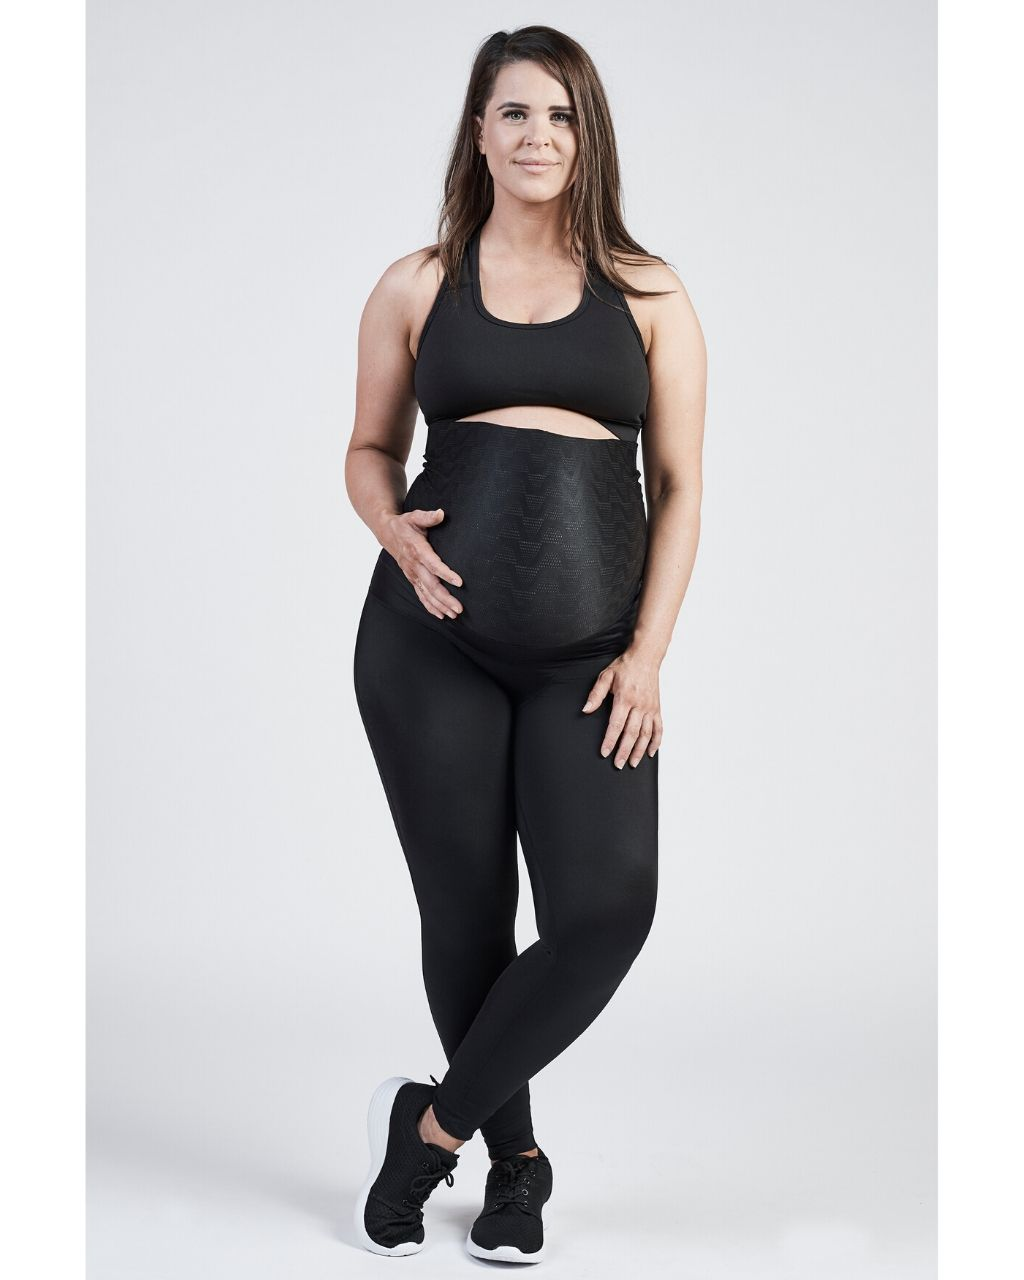 SRC Pregnancy Leggings - Over The Bump - Black